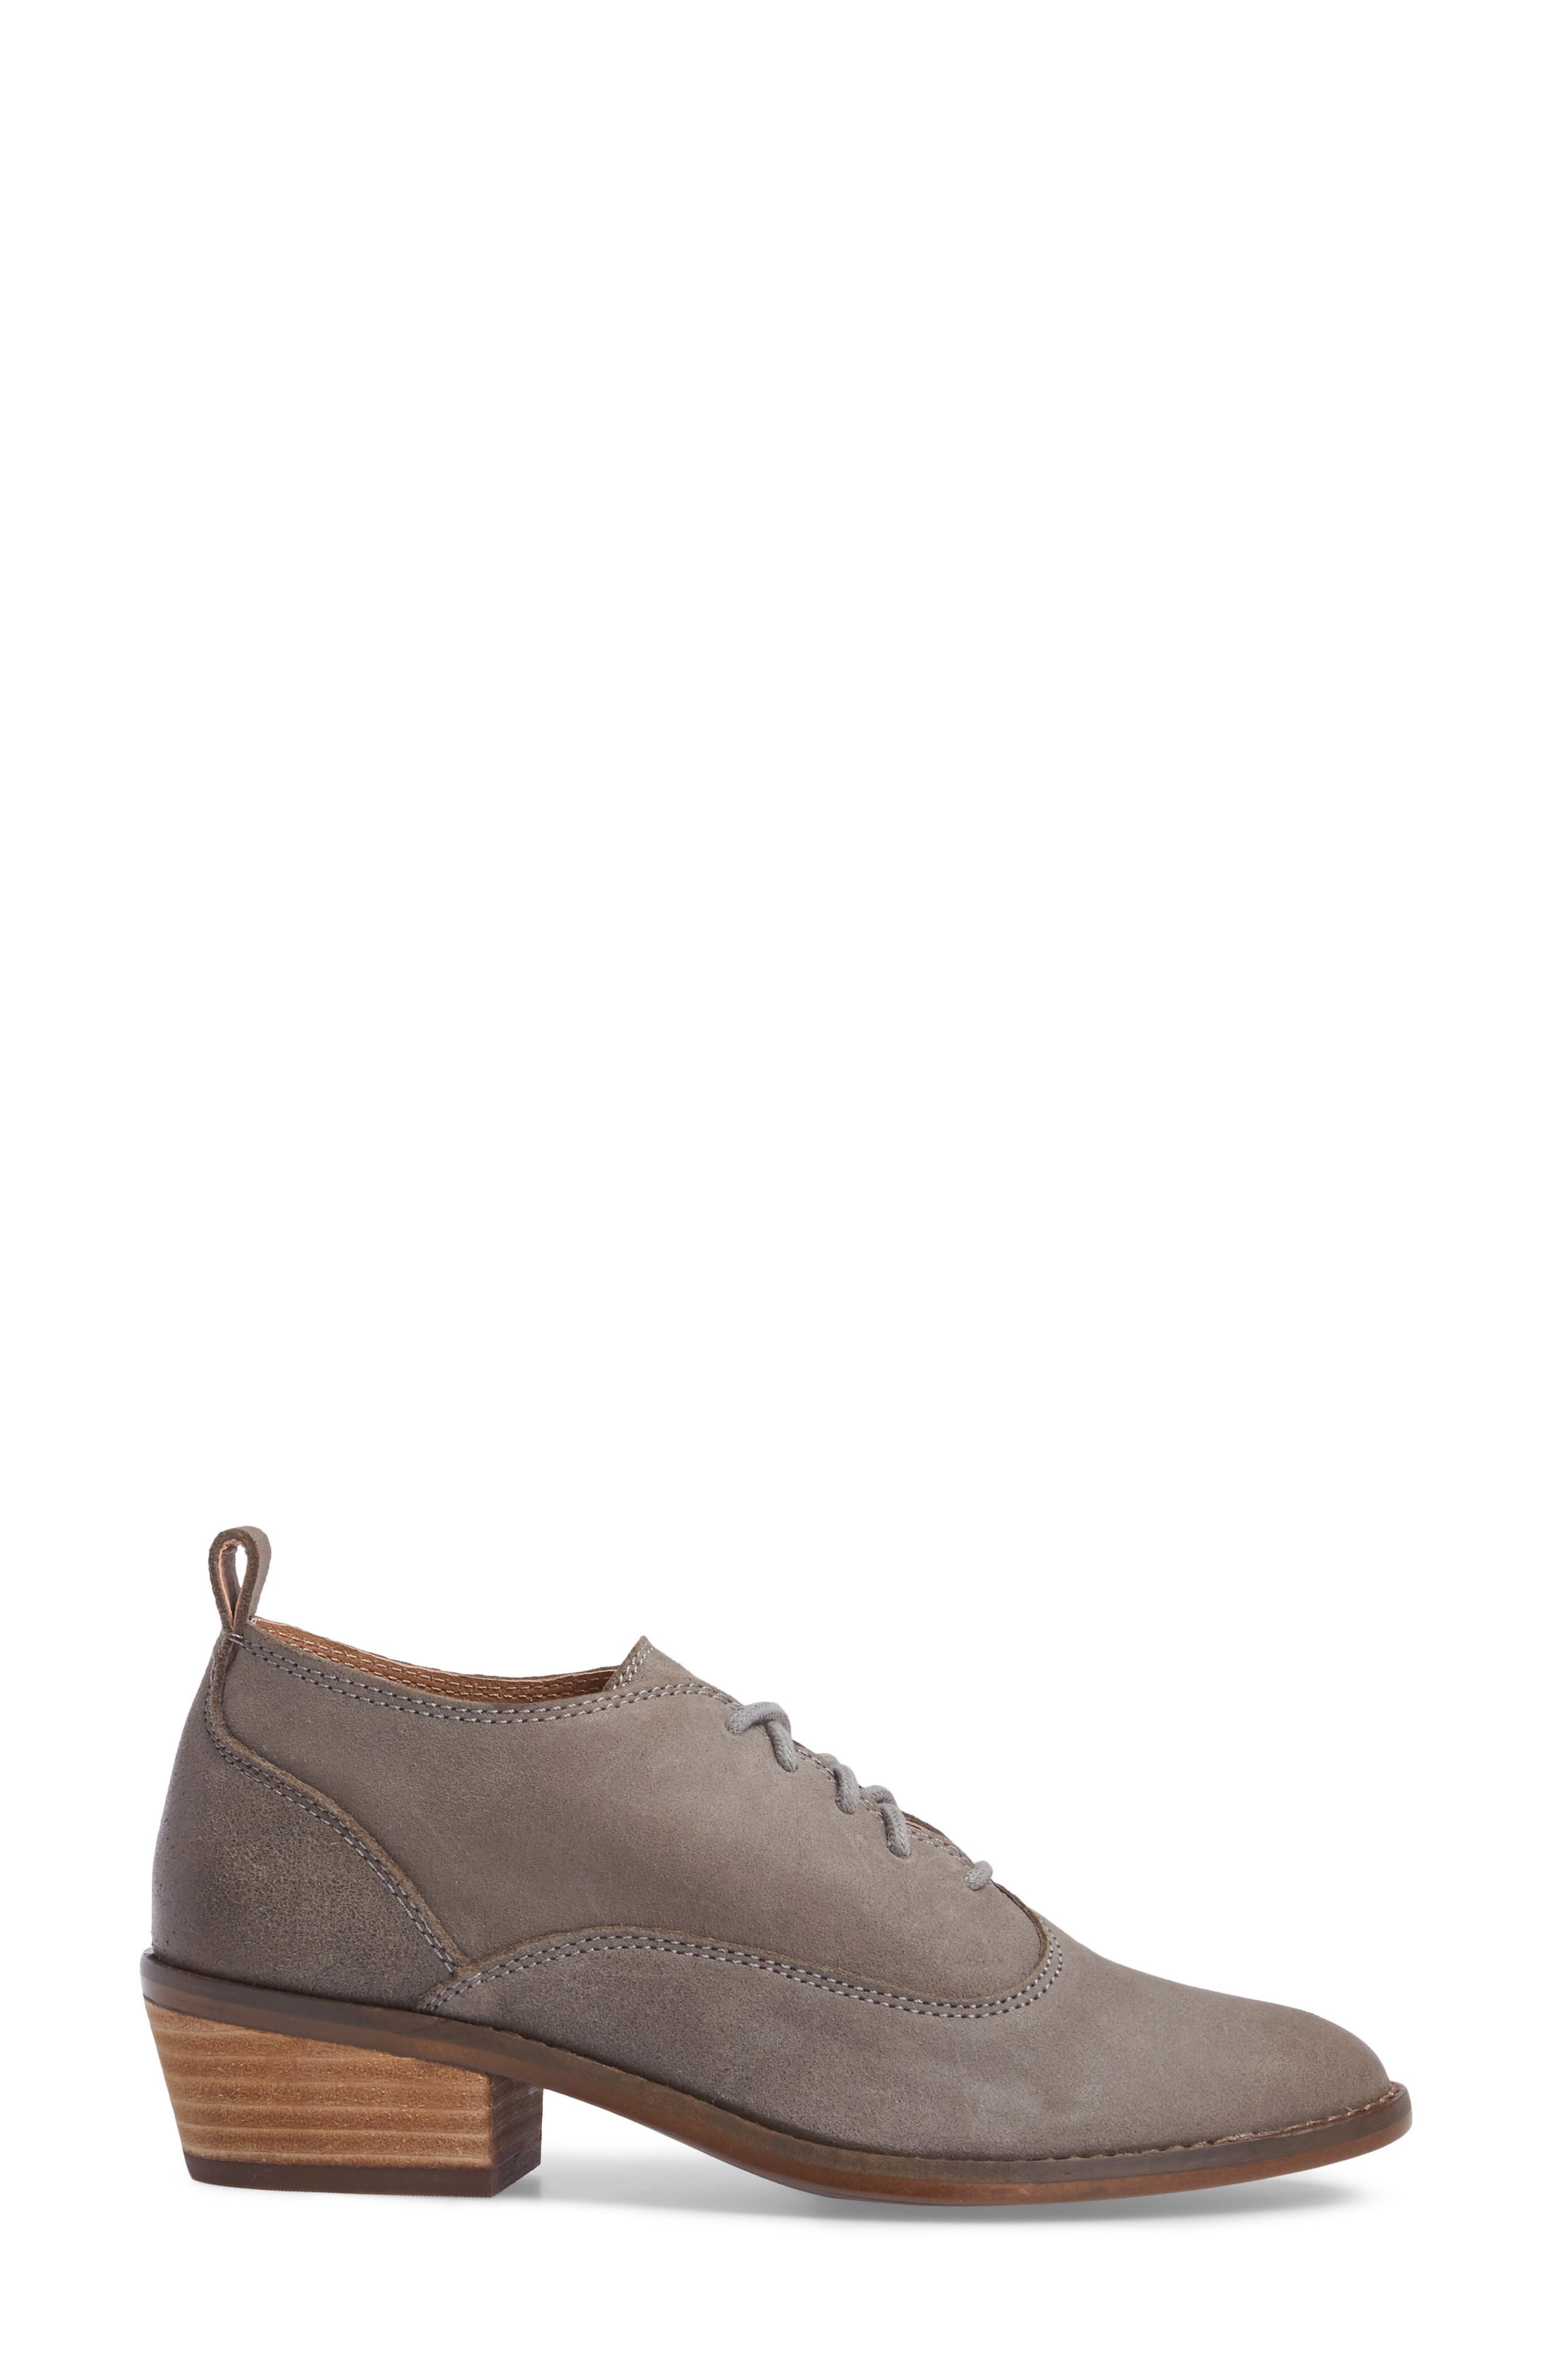 Alternate Image 3  - Lucky Brand Fantine Lace-Up Bootie (Women)